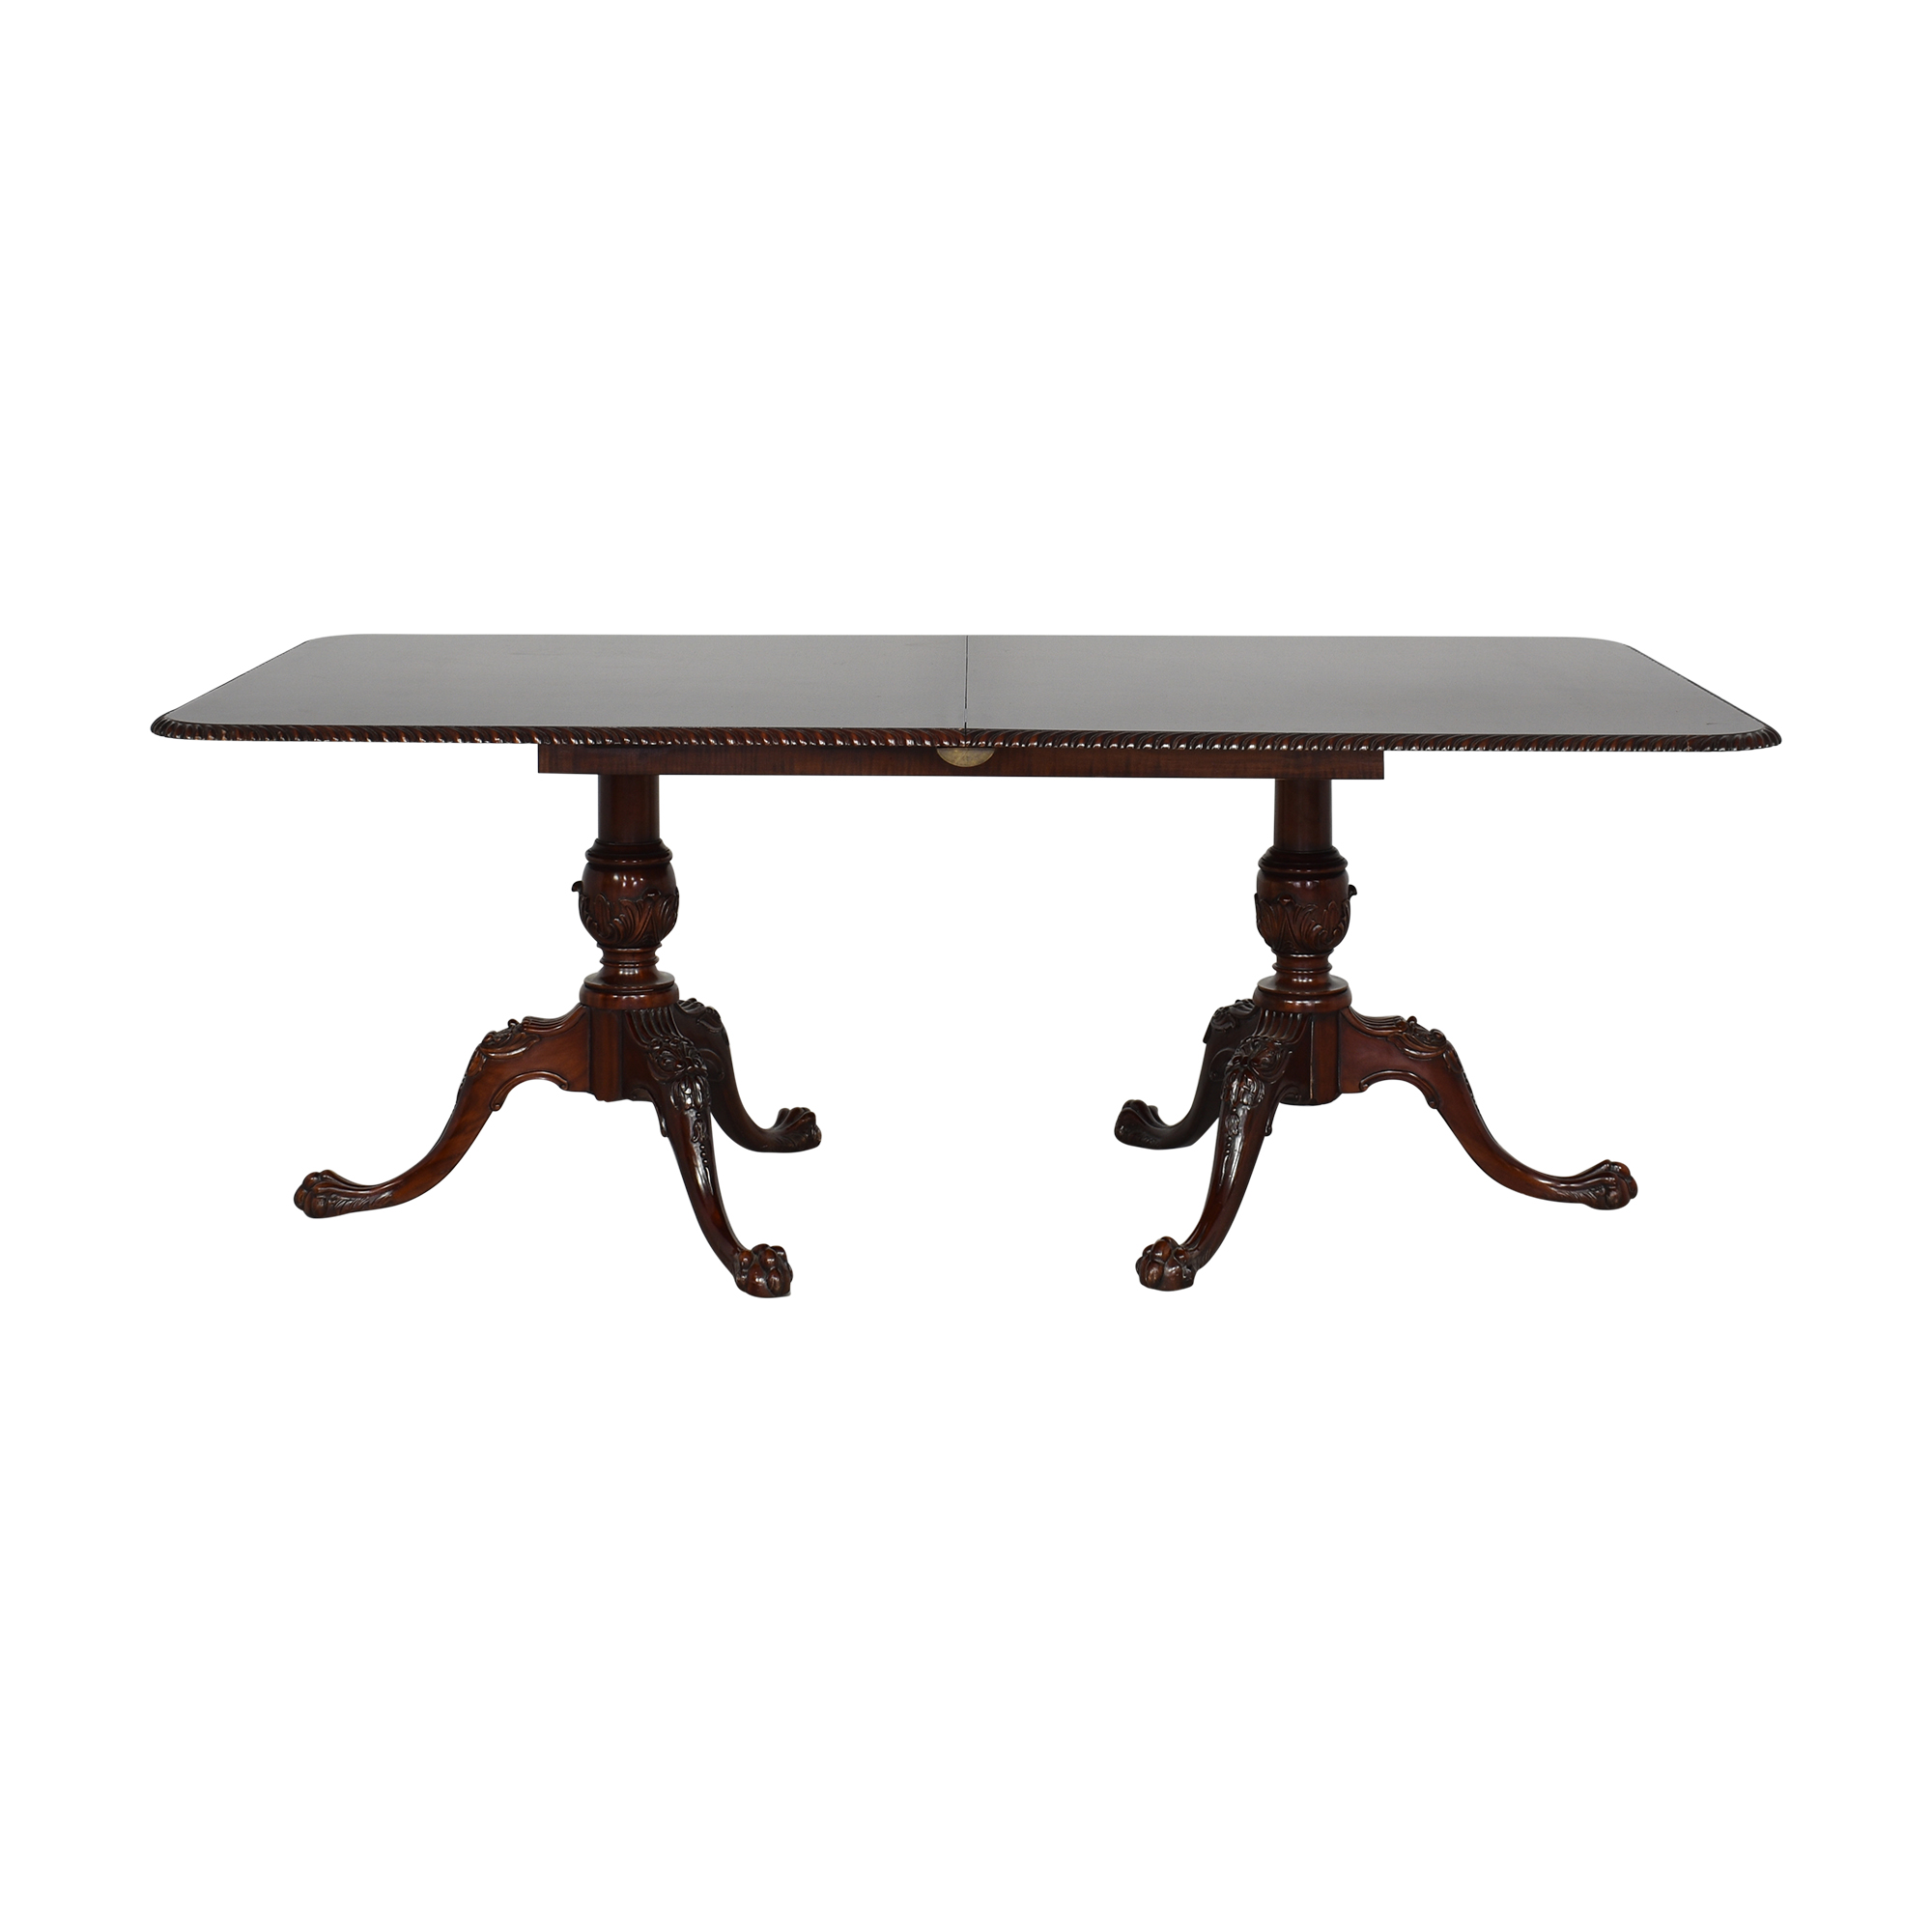 EuroLux Rope Edge Extendable Dining Table EuroLux